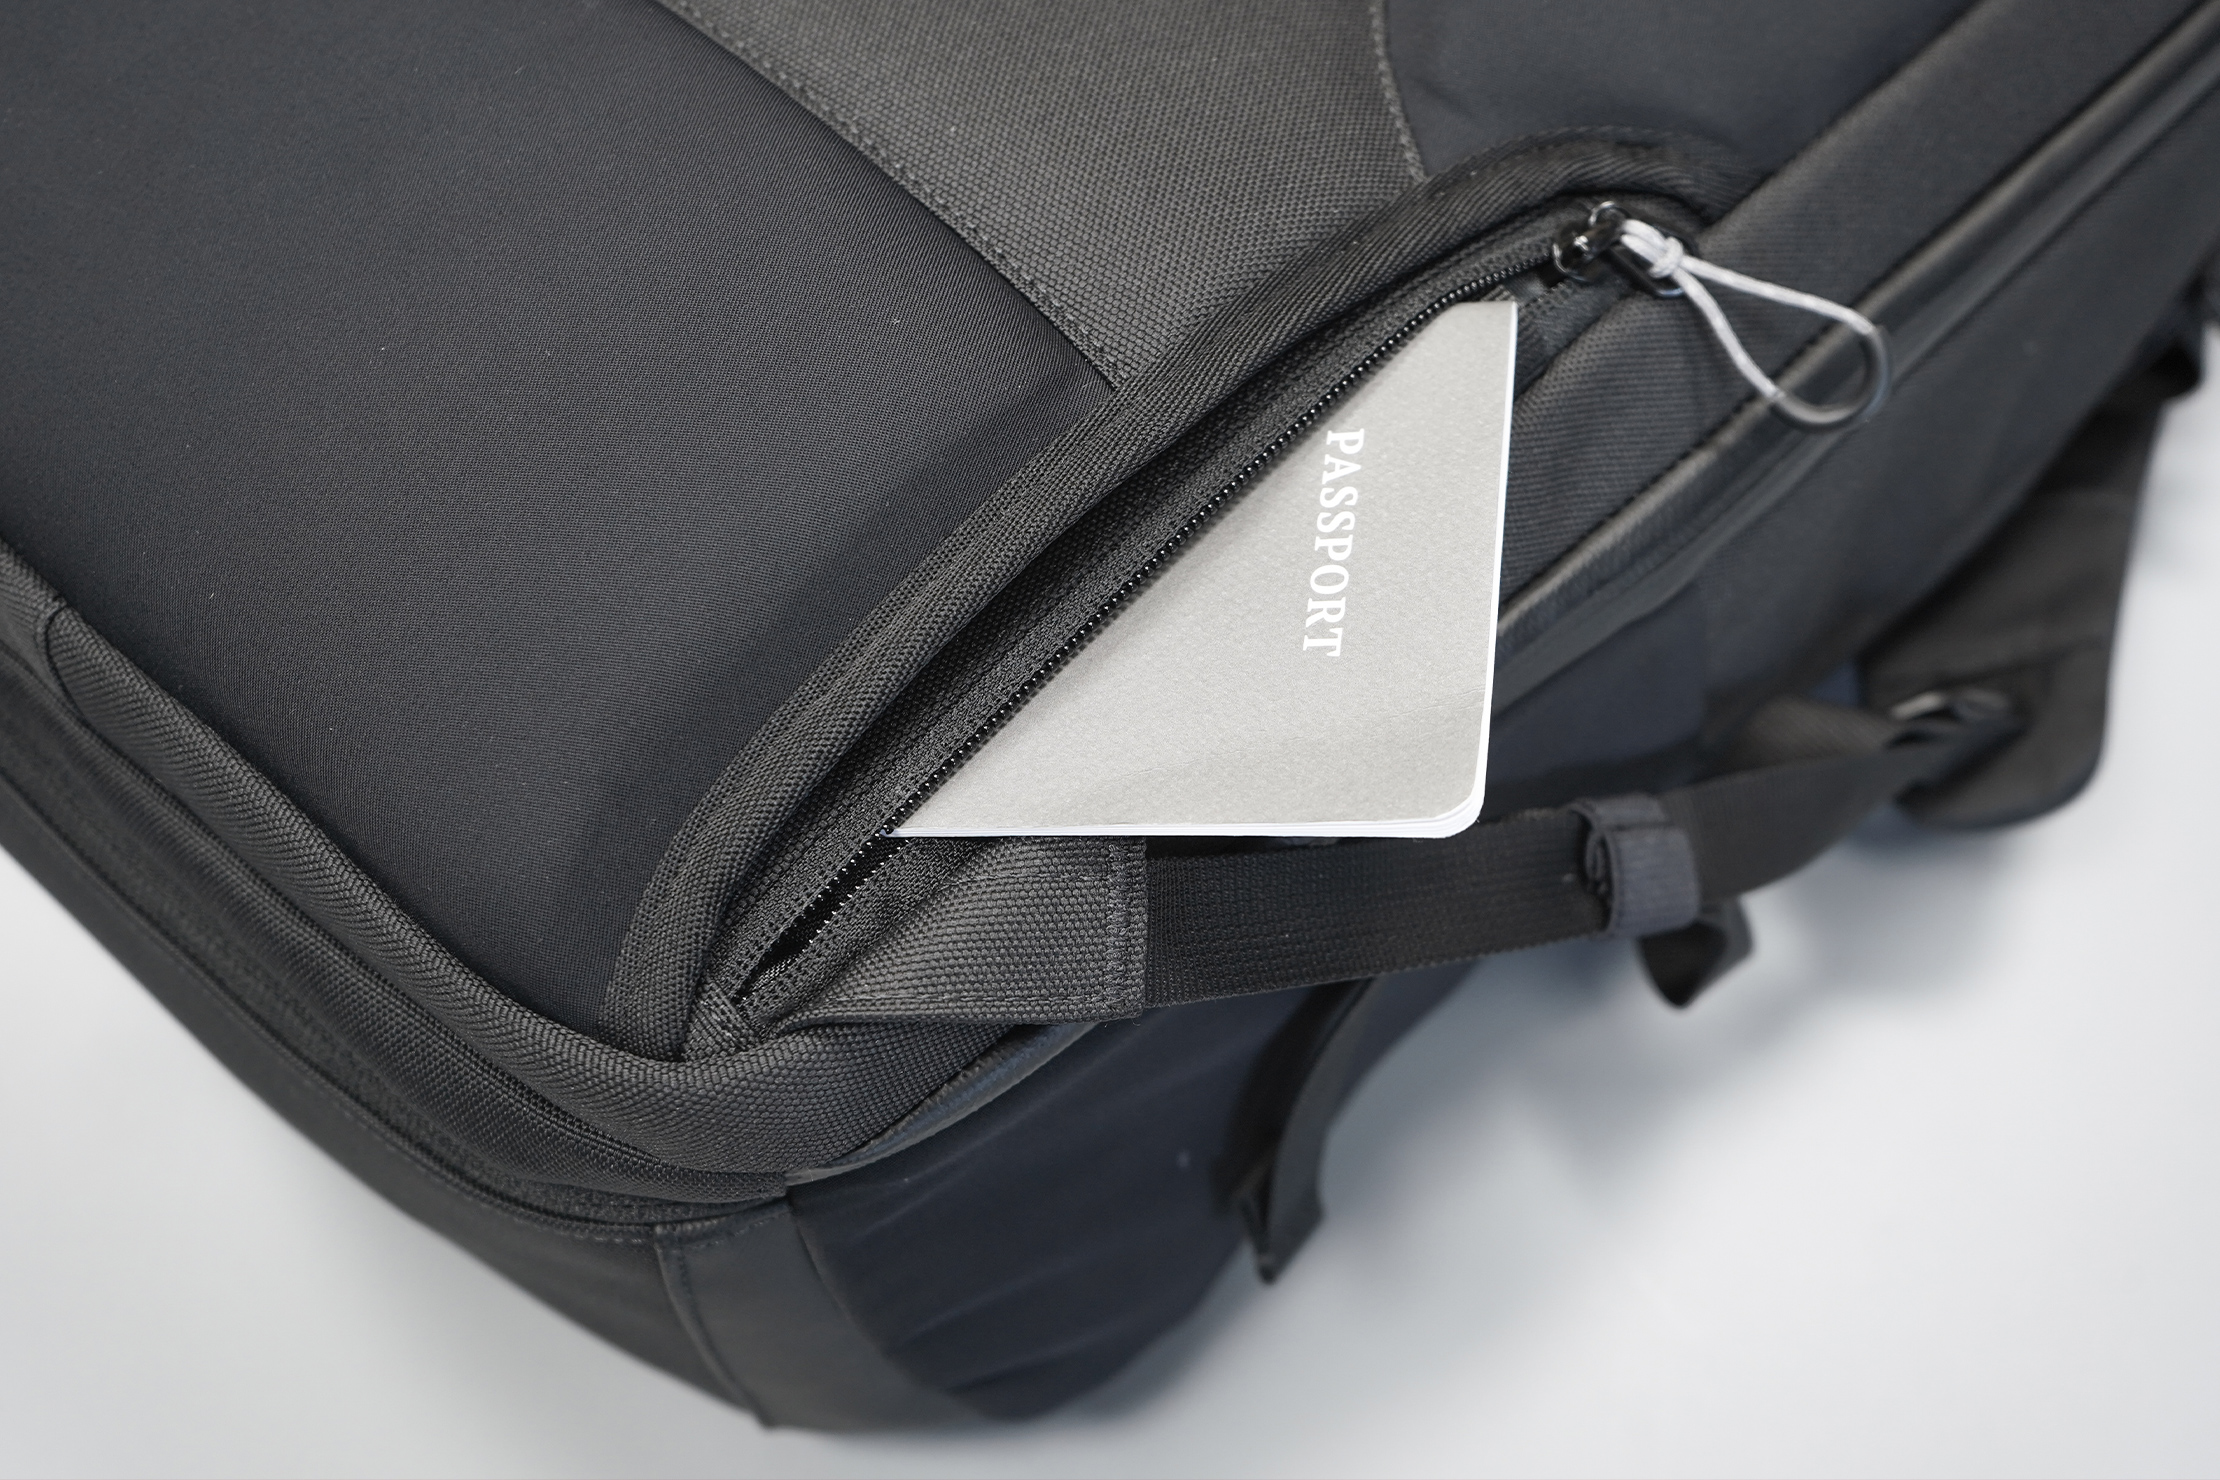 Tropicfeel Shell Travel Backpack | A security pocket to protect your important travel documents